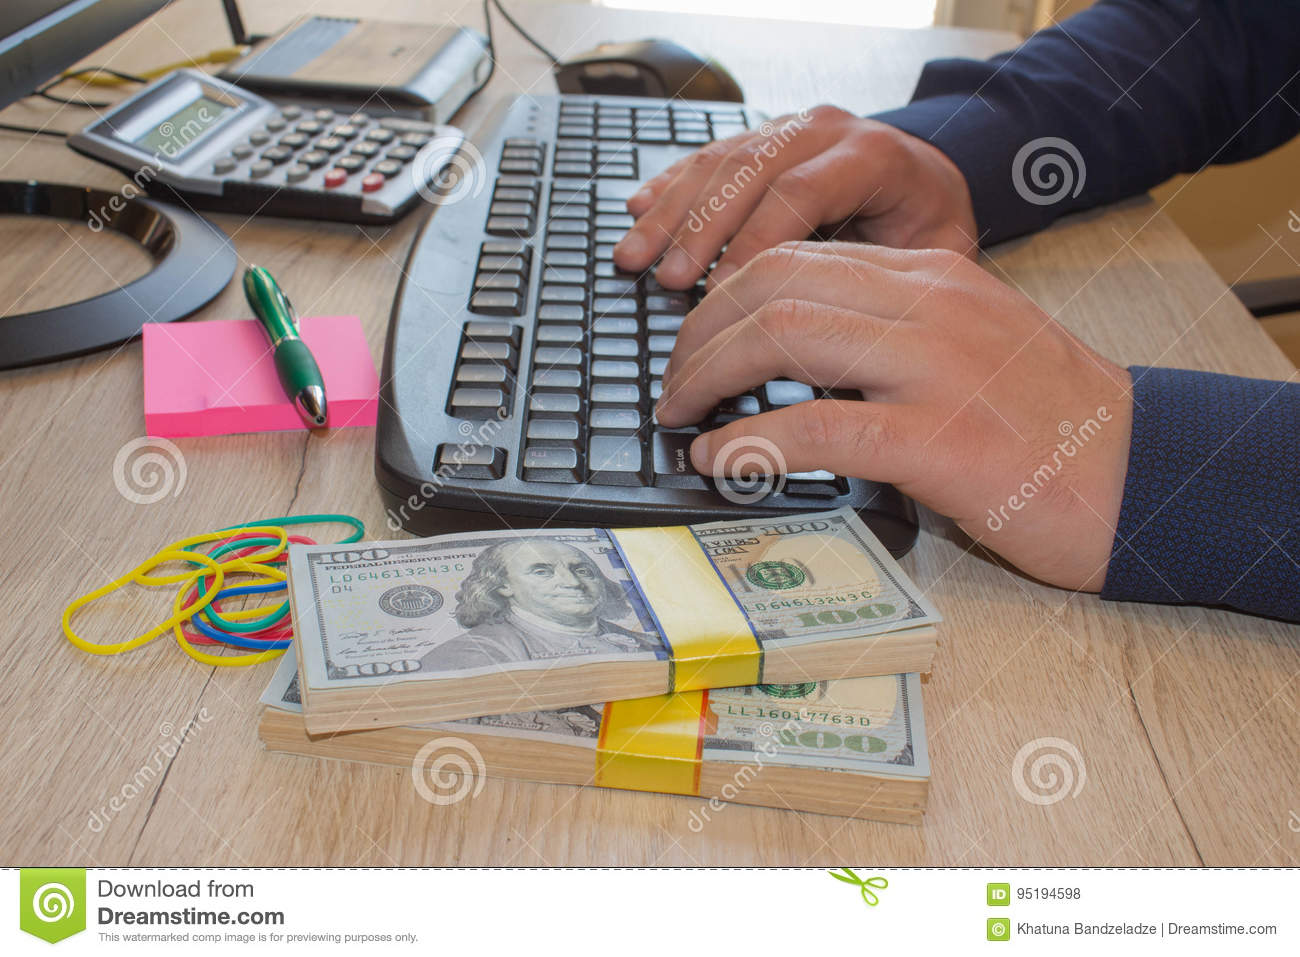 Financial concept. Make money on the Internet. Businessman works at office